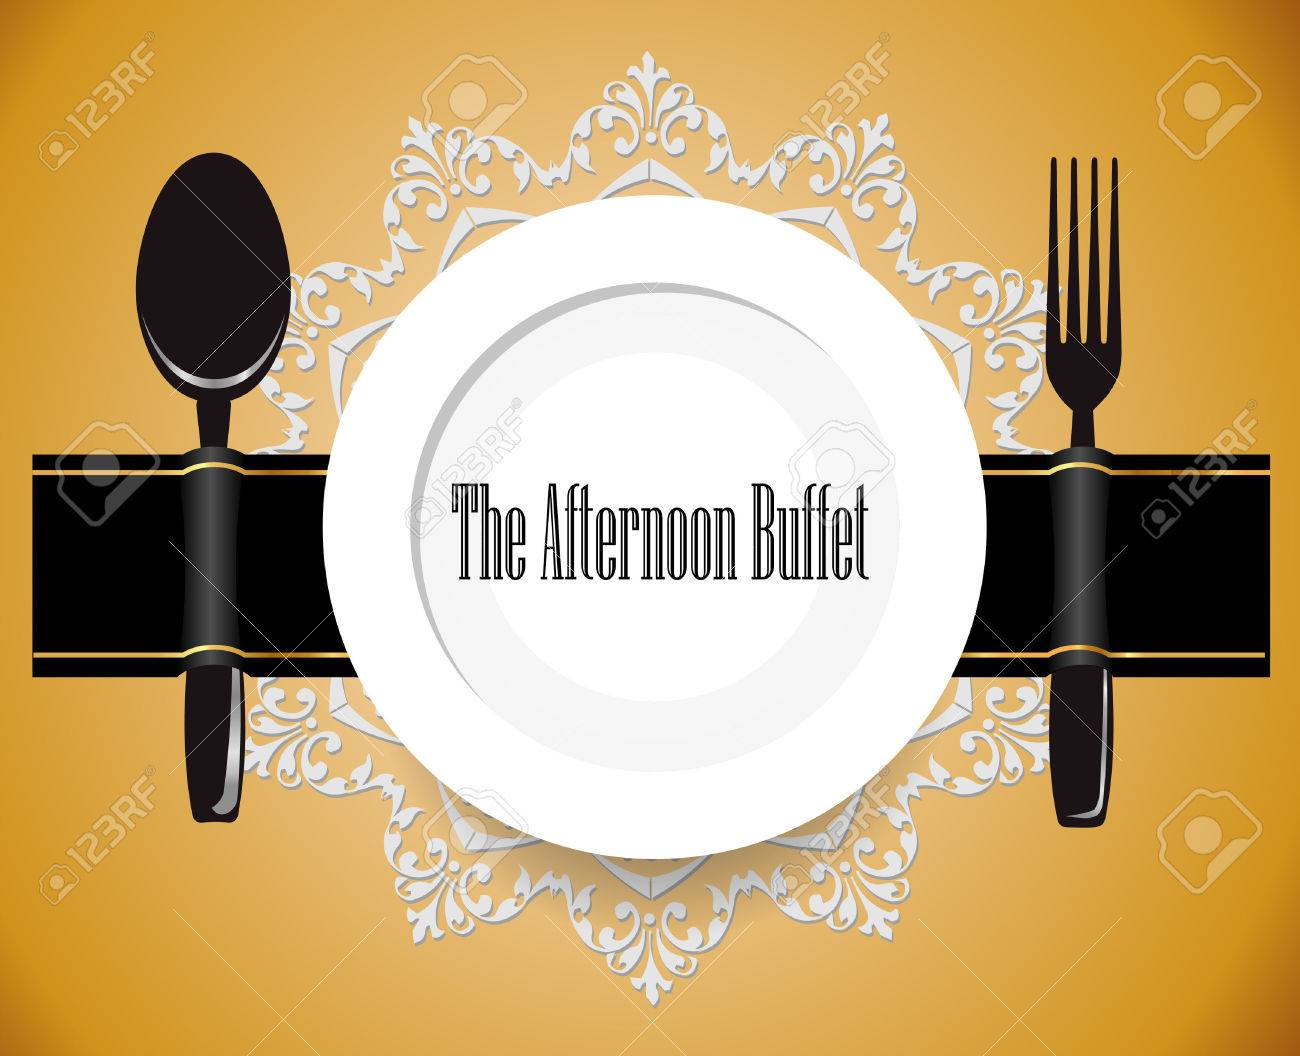 36710180-the-afternoon-buffet-lunch-all-you-can-eat-buffet-sign-vector-eps10